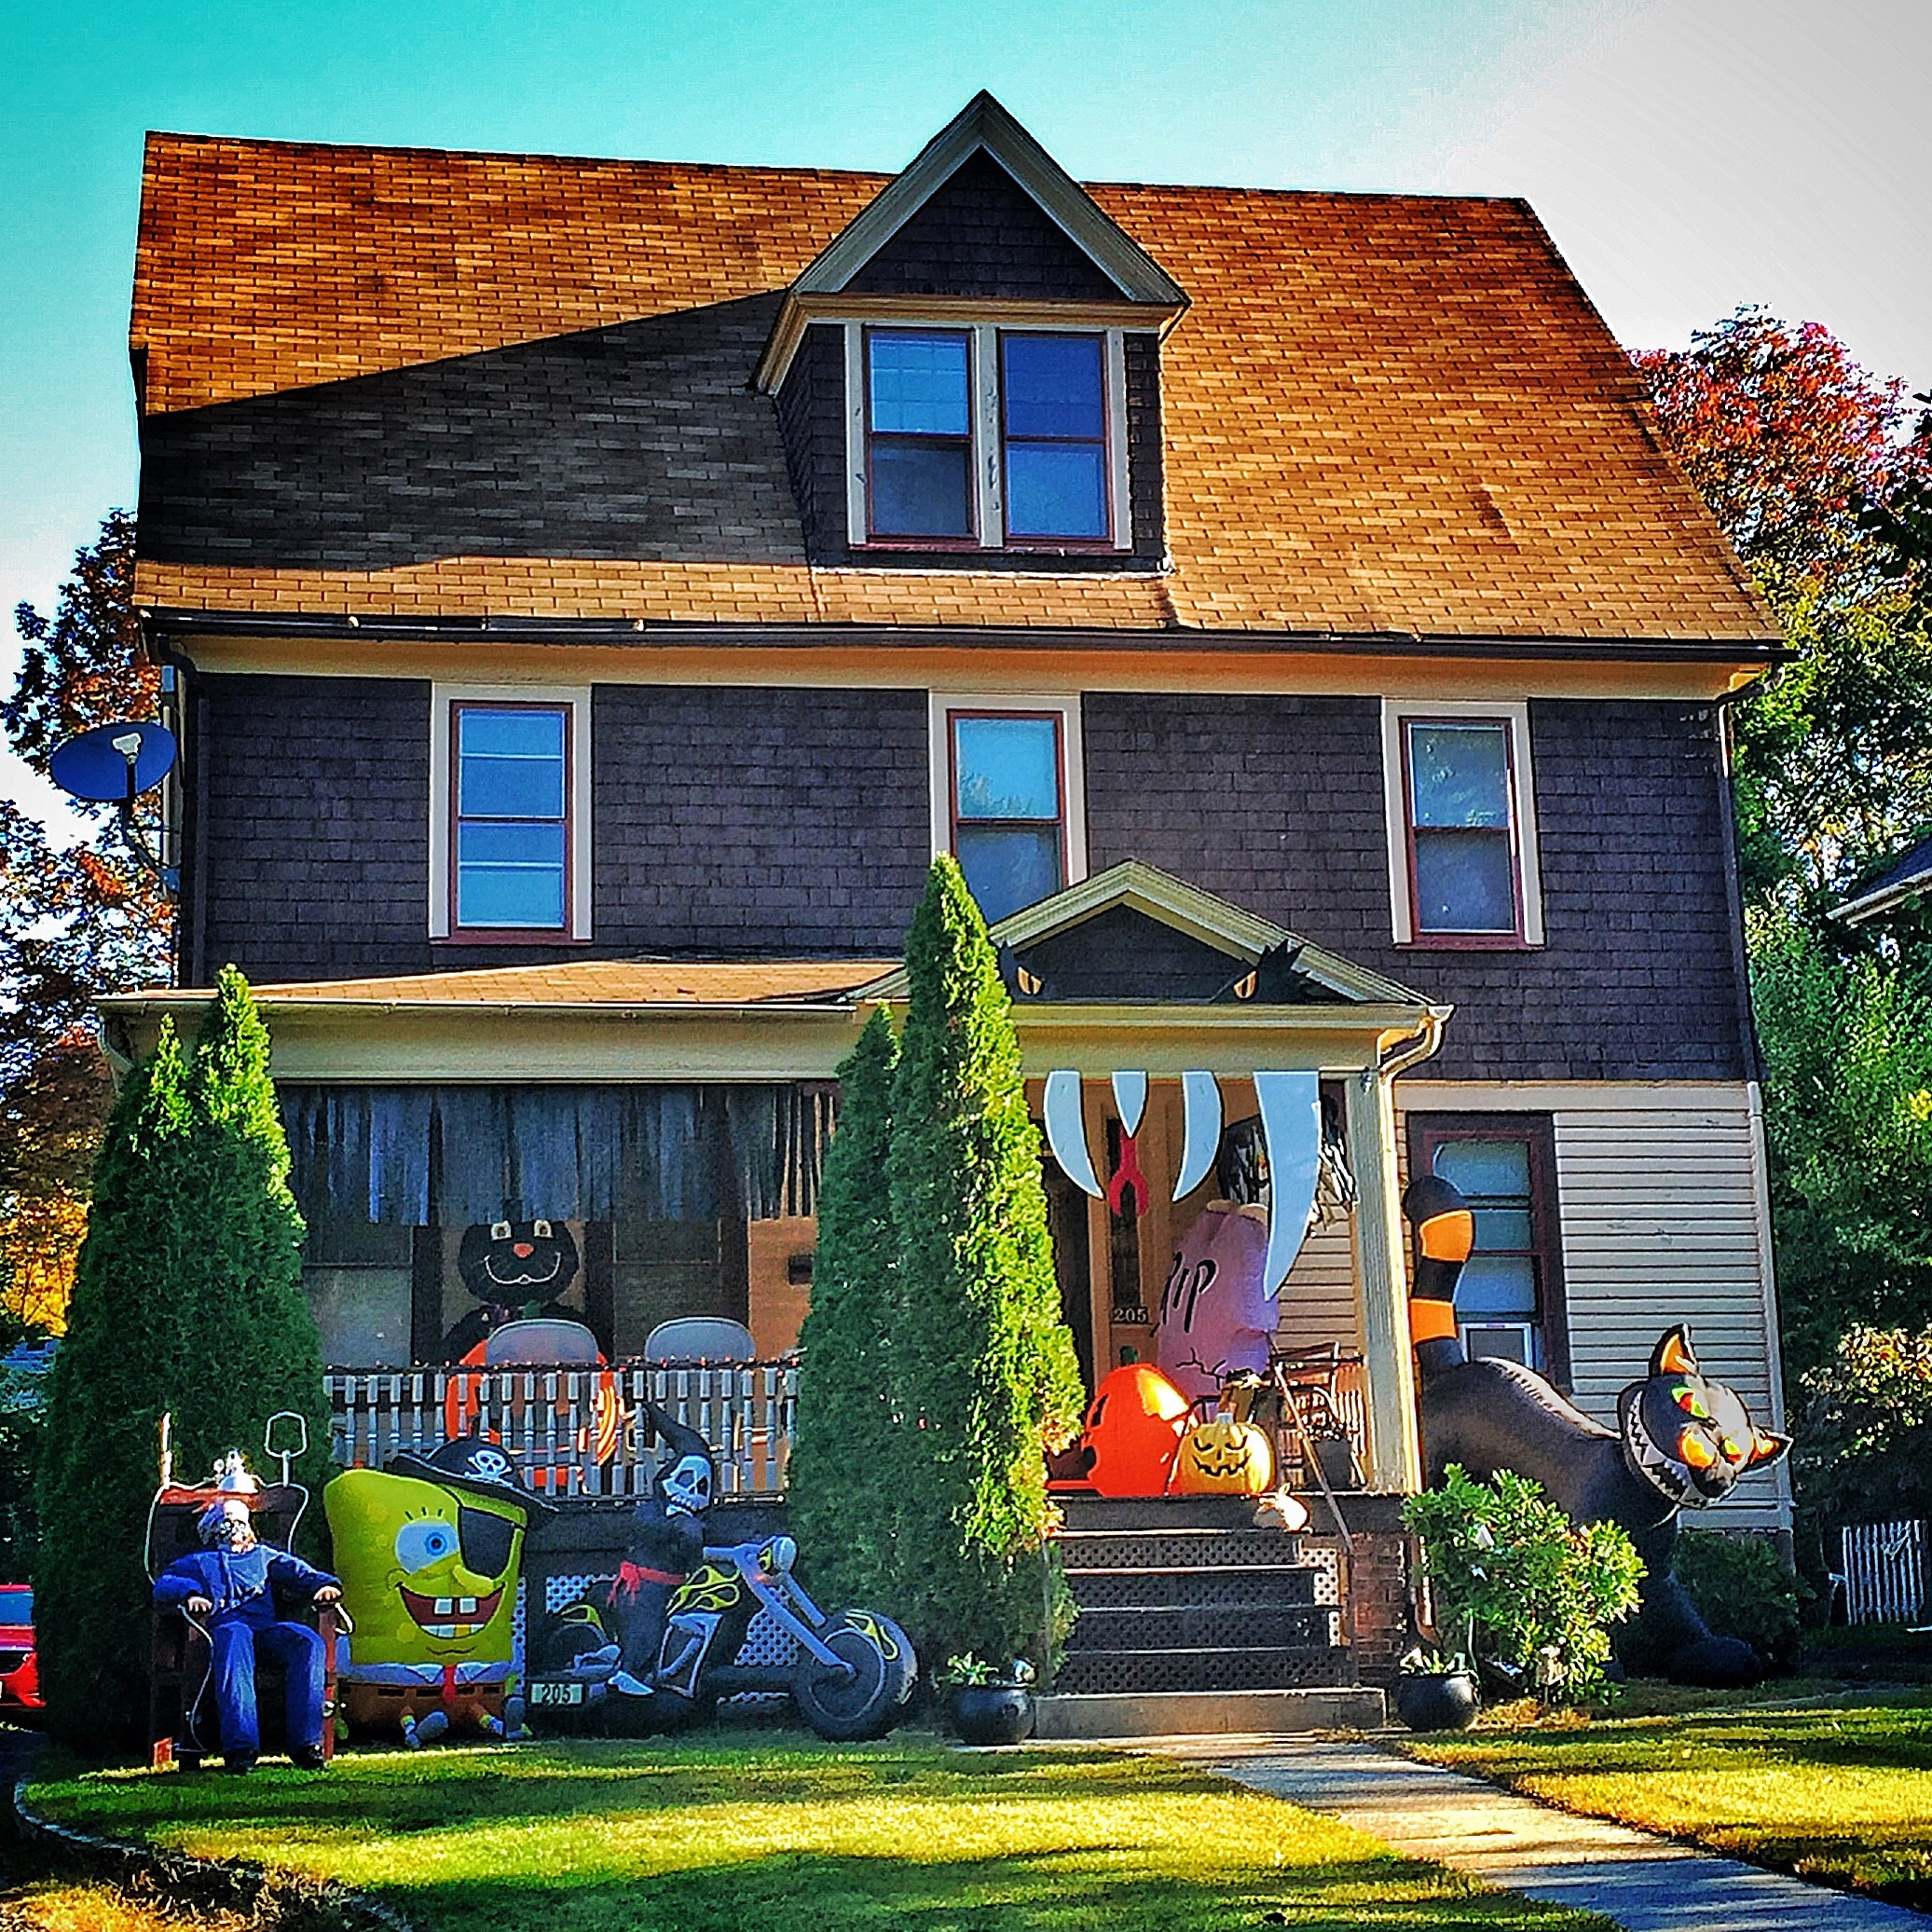 This is a crazy haunted house on Halloween with lines of kids from all over town!